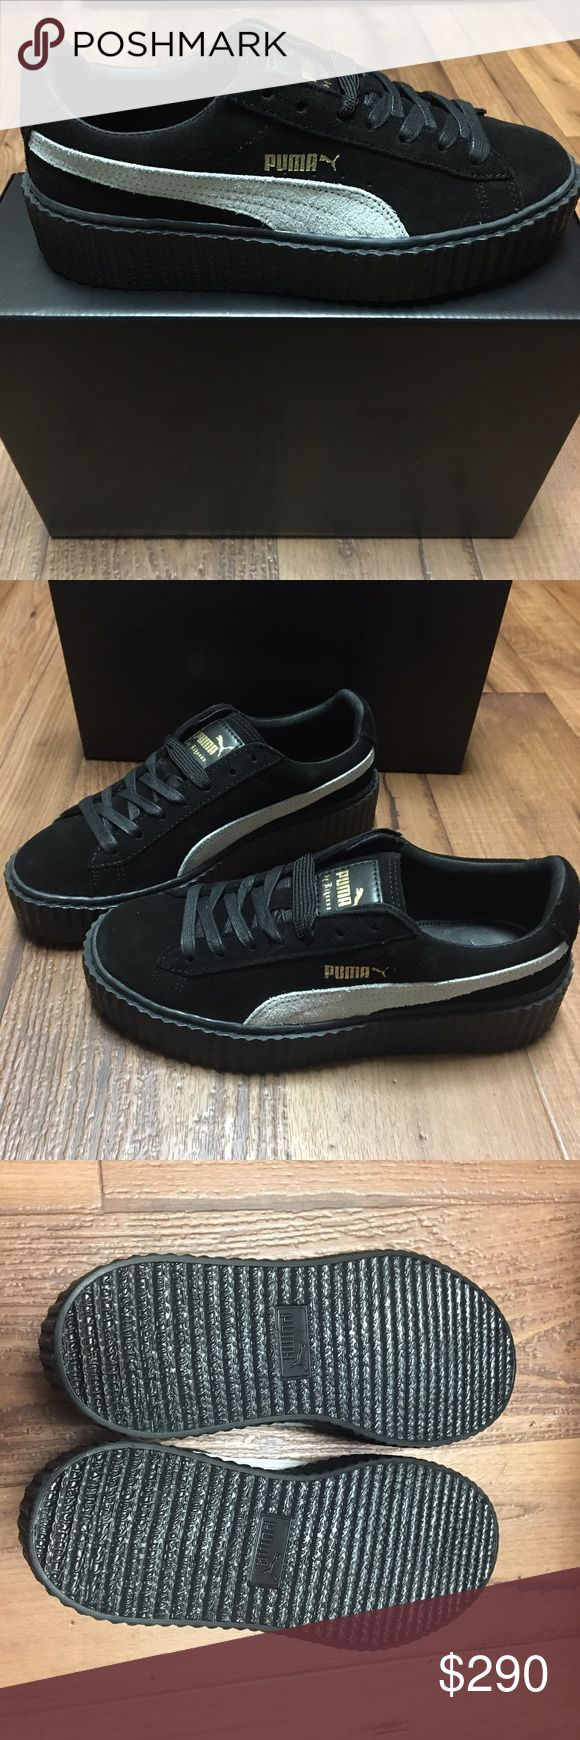 Puma Creepers New